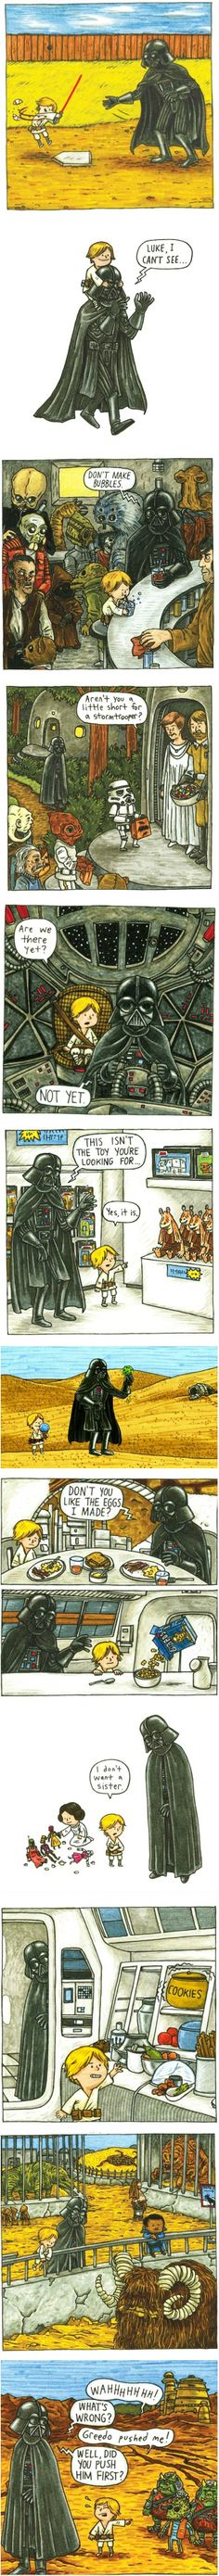 Scenes from Luke Skywalker's childhood if Darth Vader were a good father. From the book Darth Vader and Son by Jeffrey Brown Darth Vader And Son, Anakin Vader, Bd Star Wars, Star Wars Rebels, My Sun And Stars, Love Stars, Star Wars Personajes, Geeks, The Force Is Strong